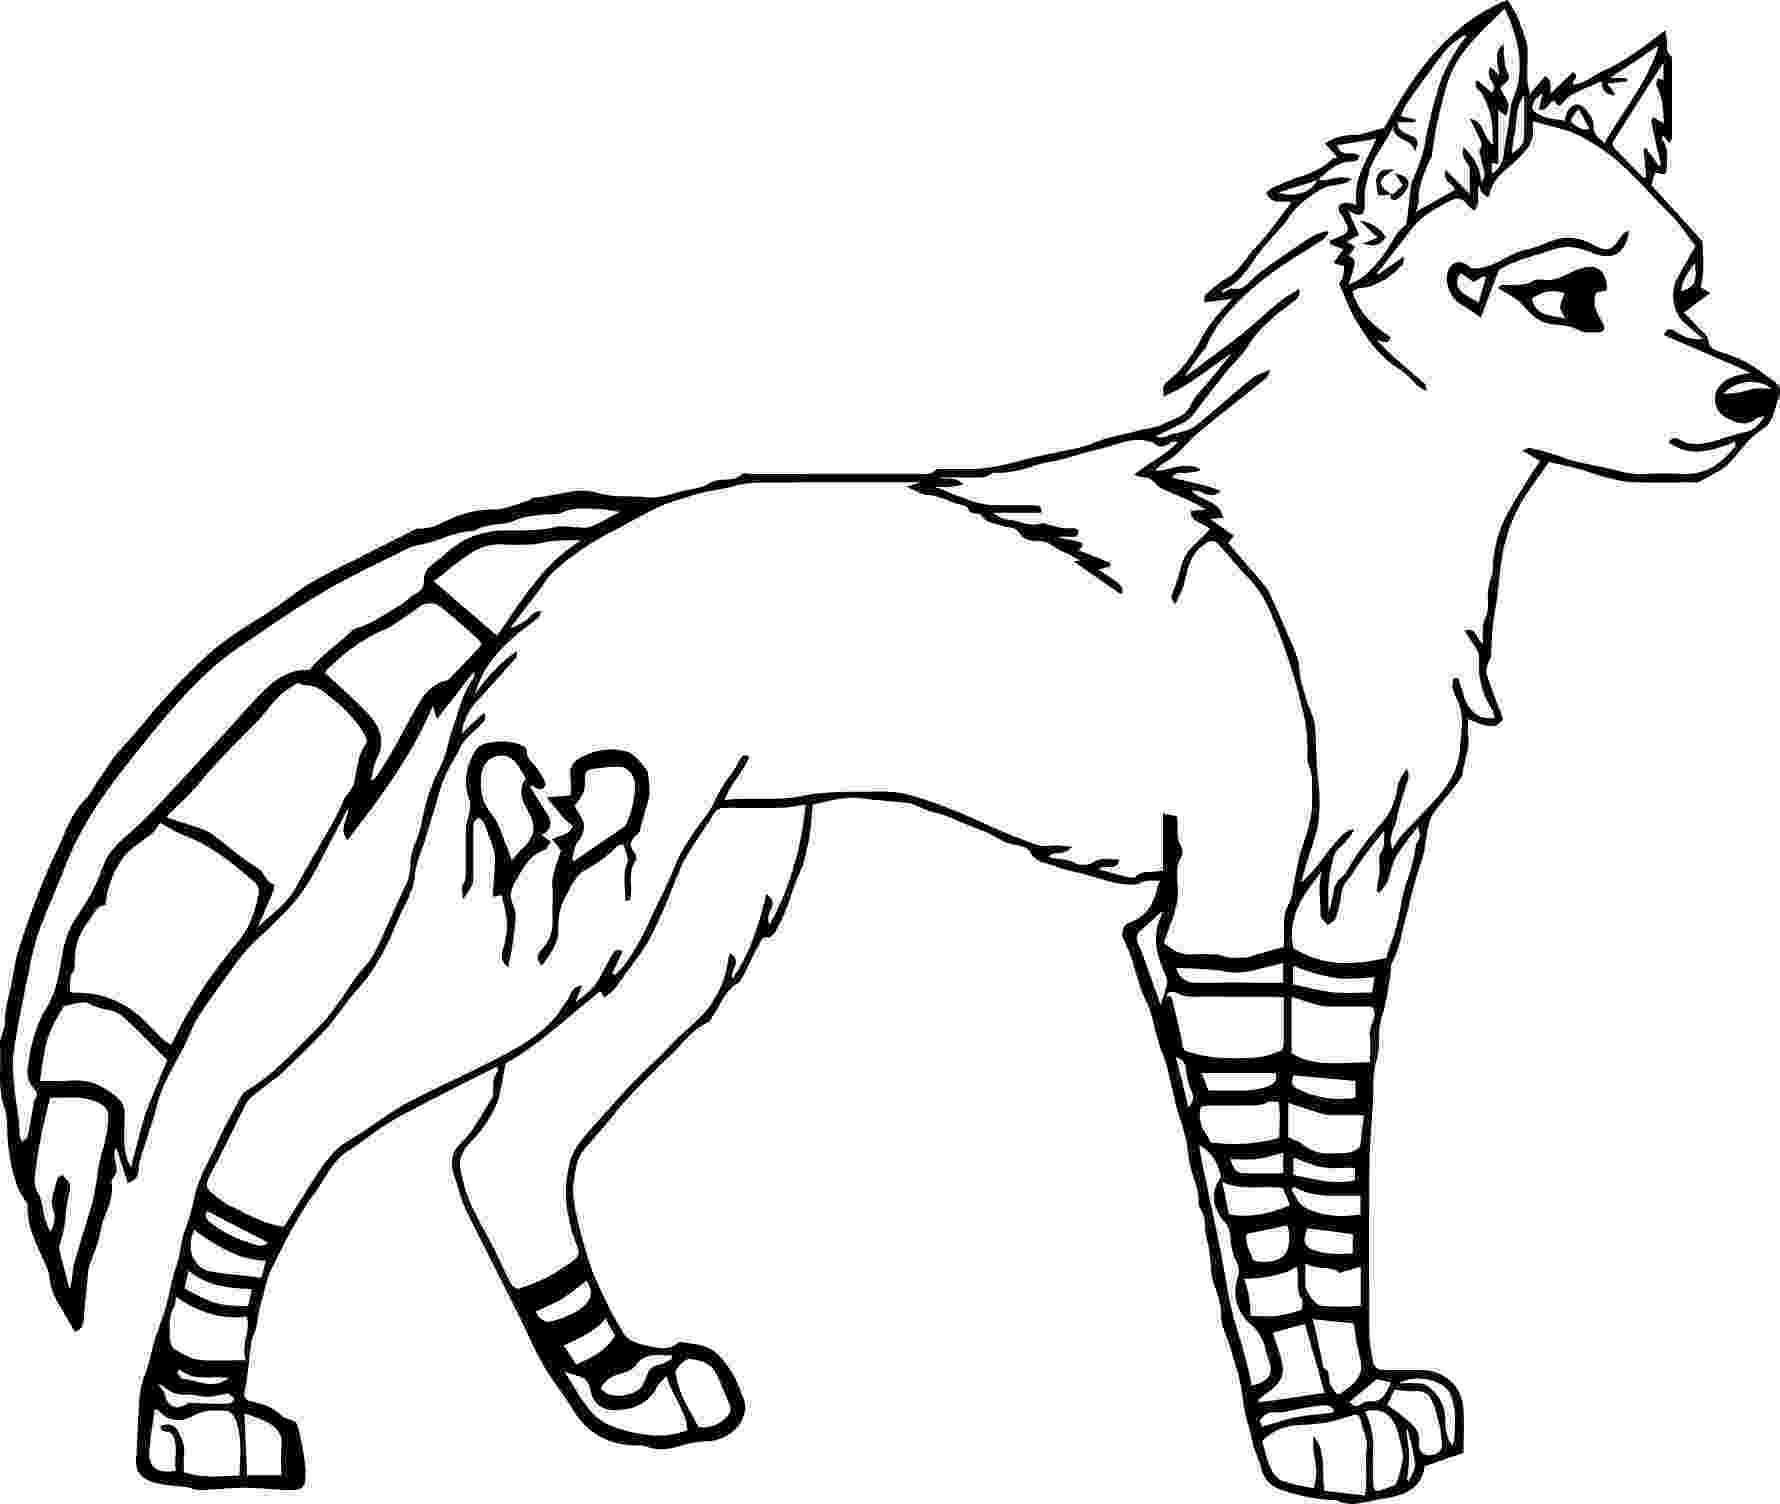 wolves colouring pages print download wolf coloring pages theme pages colouring wolves 1 1